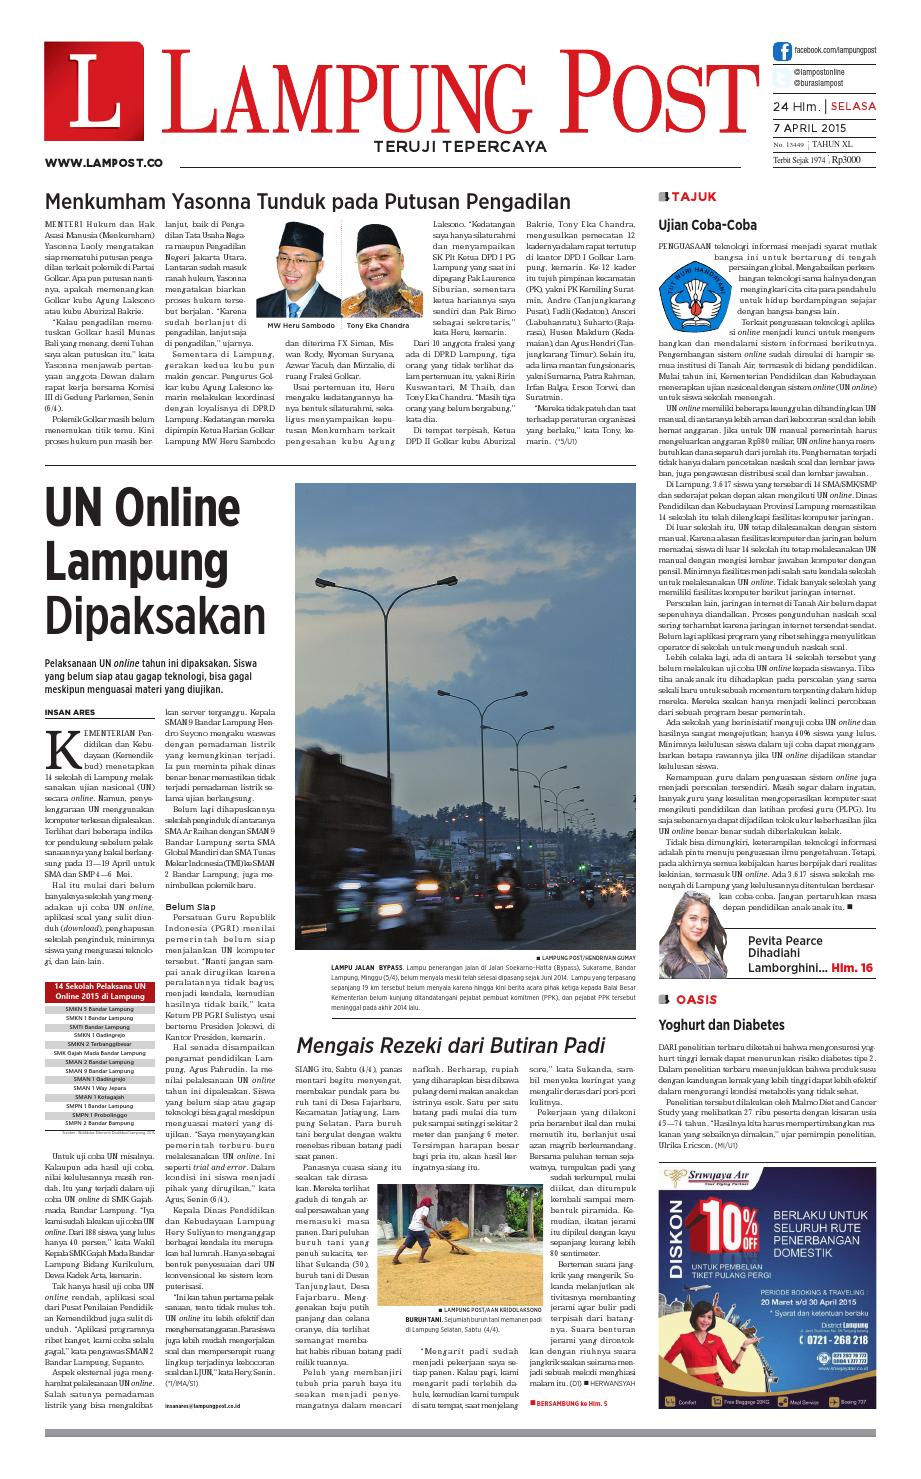 Lampung Post Selasa 7 April 2015 By Lampung Post Issuu # Muebles Koyga Vigo